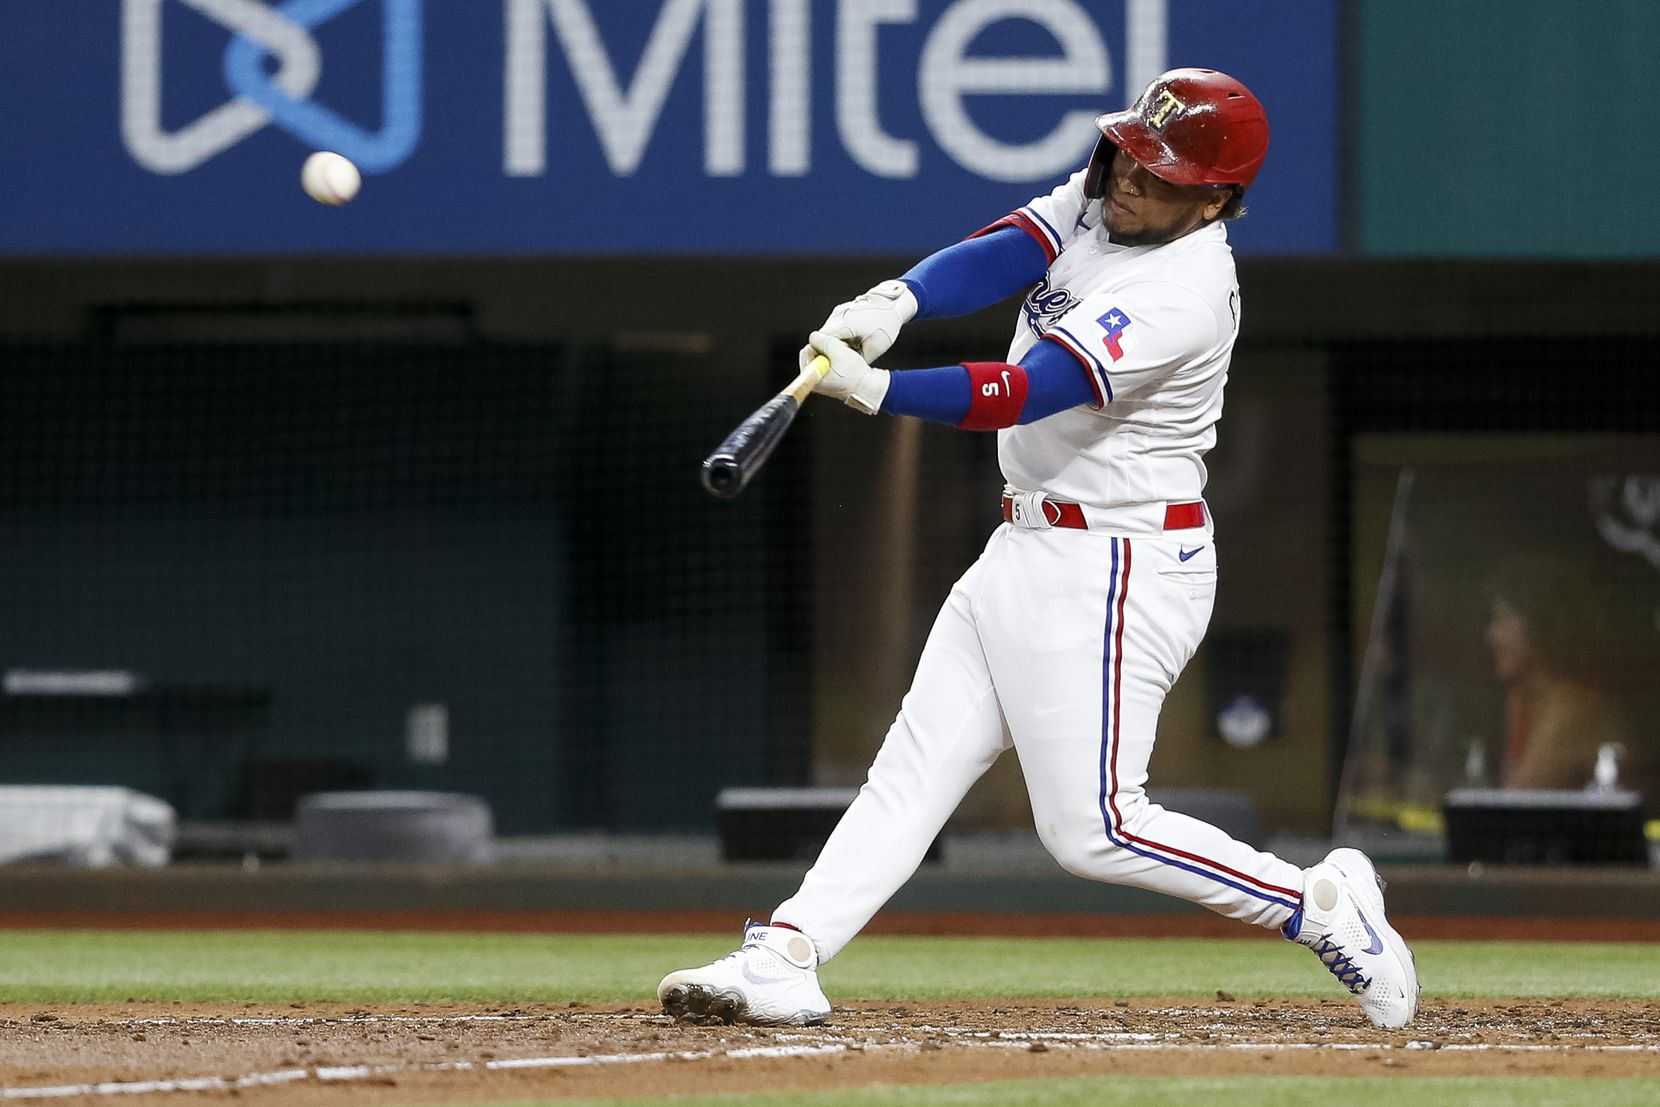 Texas Rangers left fielder Willie Calhoun (5) hits the ball during the third inning against the Oakland Athletics at Globe Life Field on Tuesday, June 22, 2021, in Arlington. (Elias Valverde II/The Dallas Morning News)